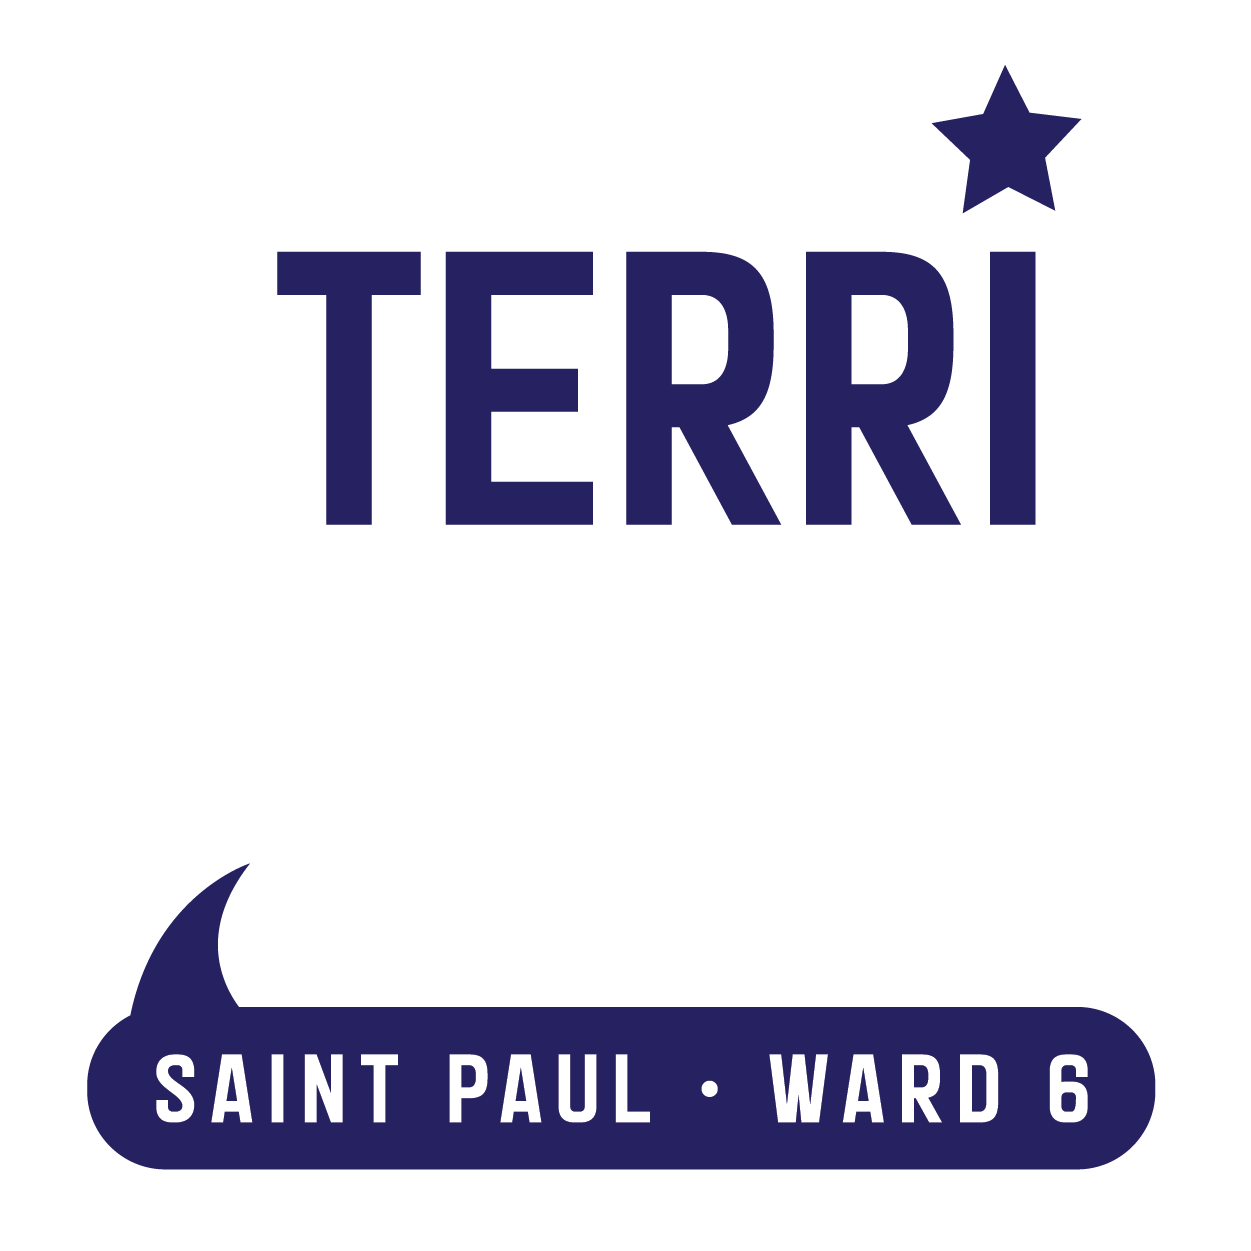 Terri Thao for St. Paul City Council Ward 6